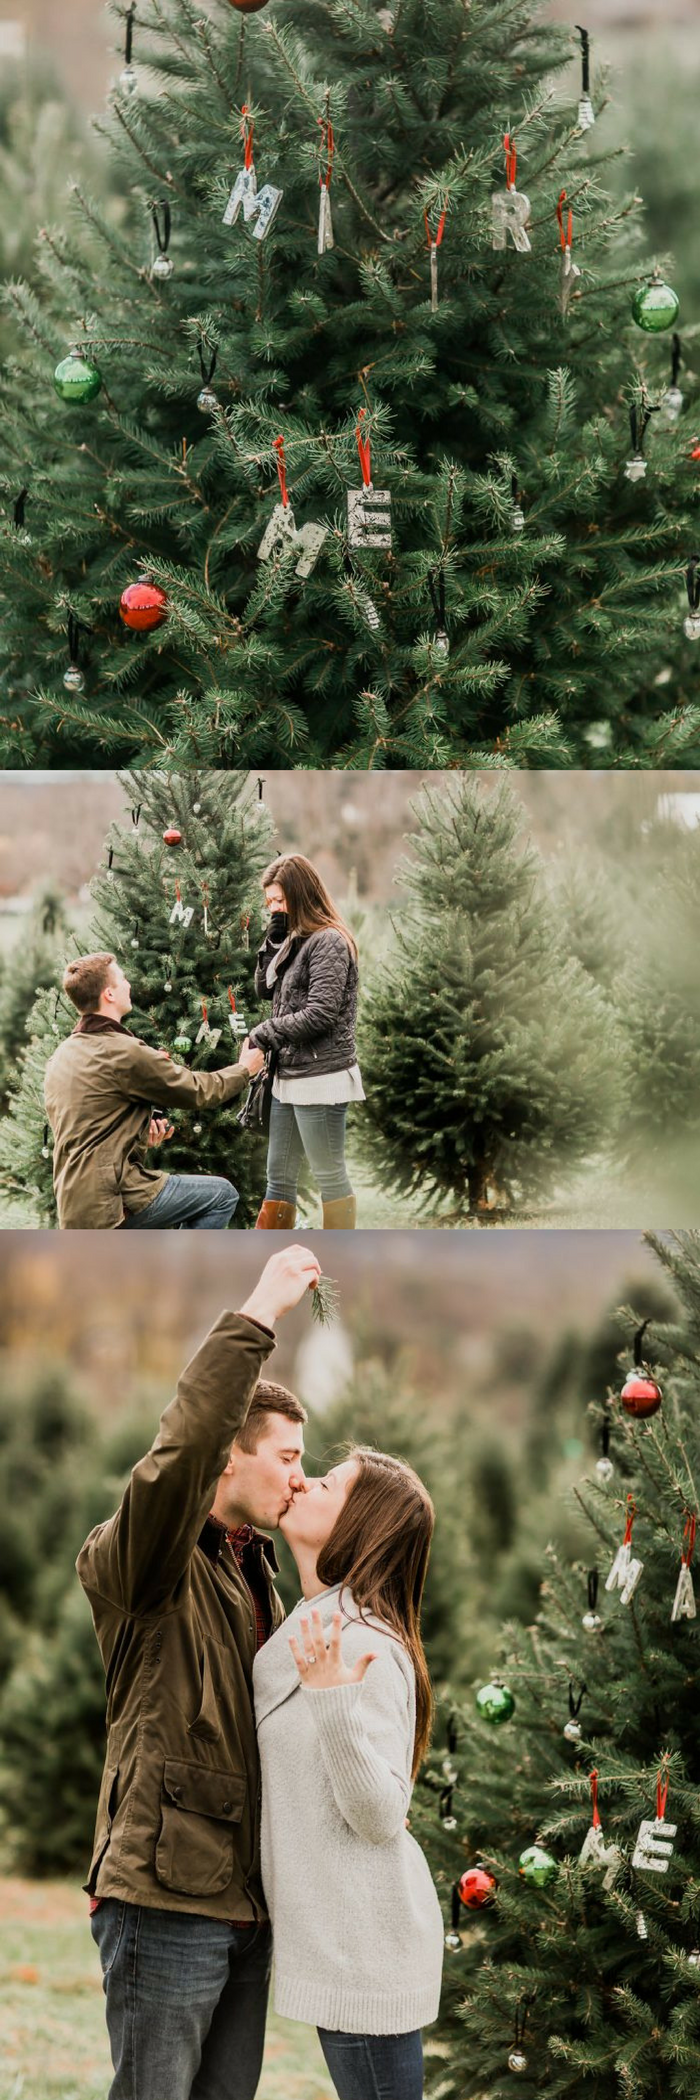 Paige And Aj S Christmas Tree Farm Proposal On Howtheyasked Com Holiday Engagement Wedding Proposals Tree Farm Proposal